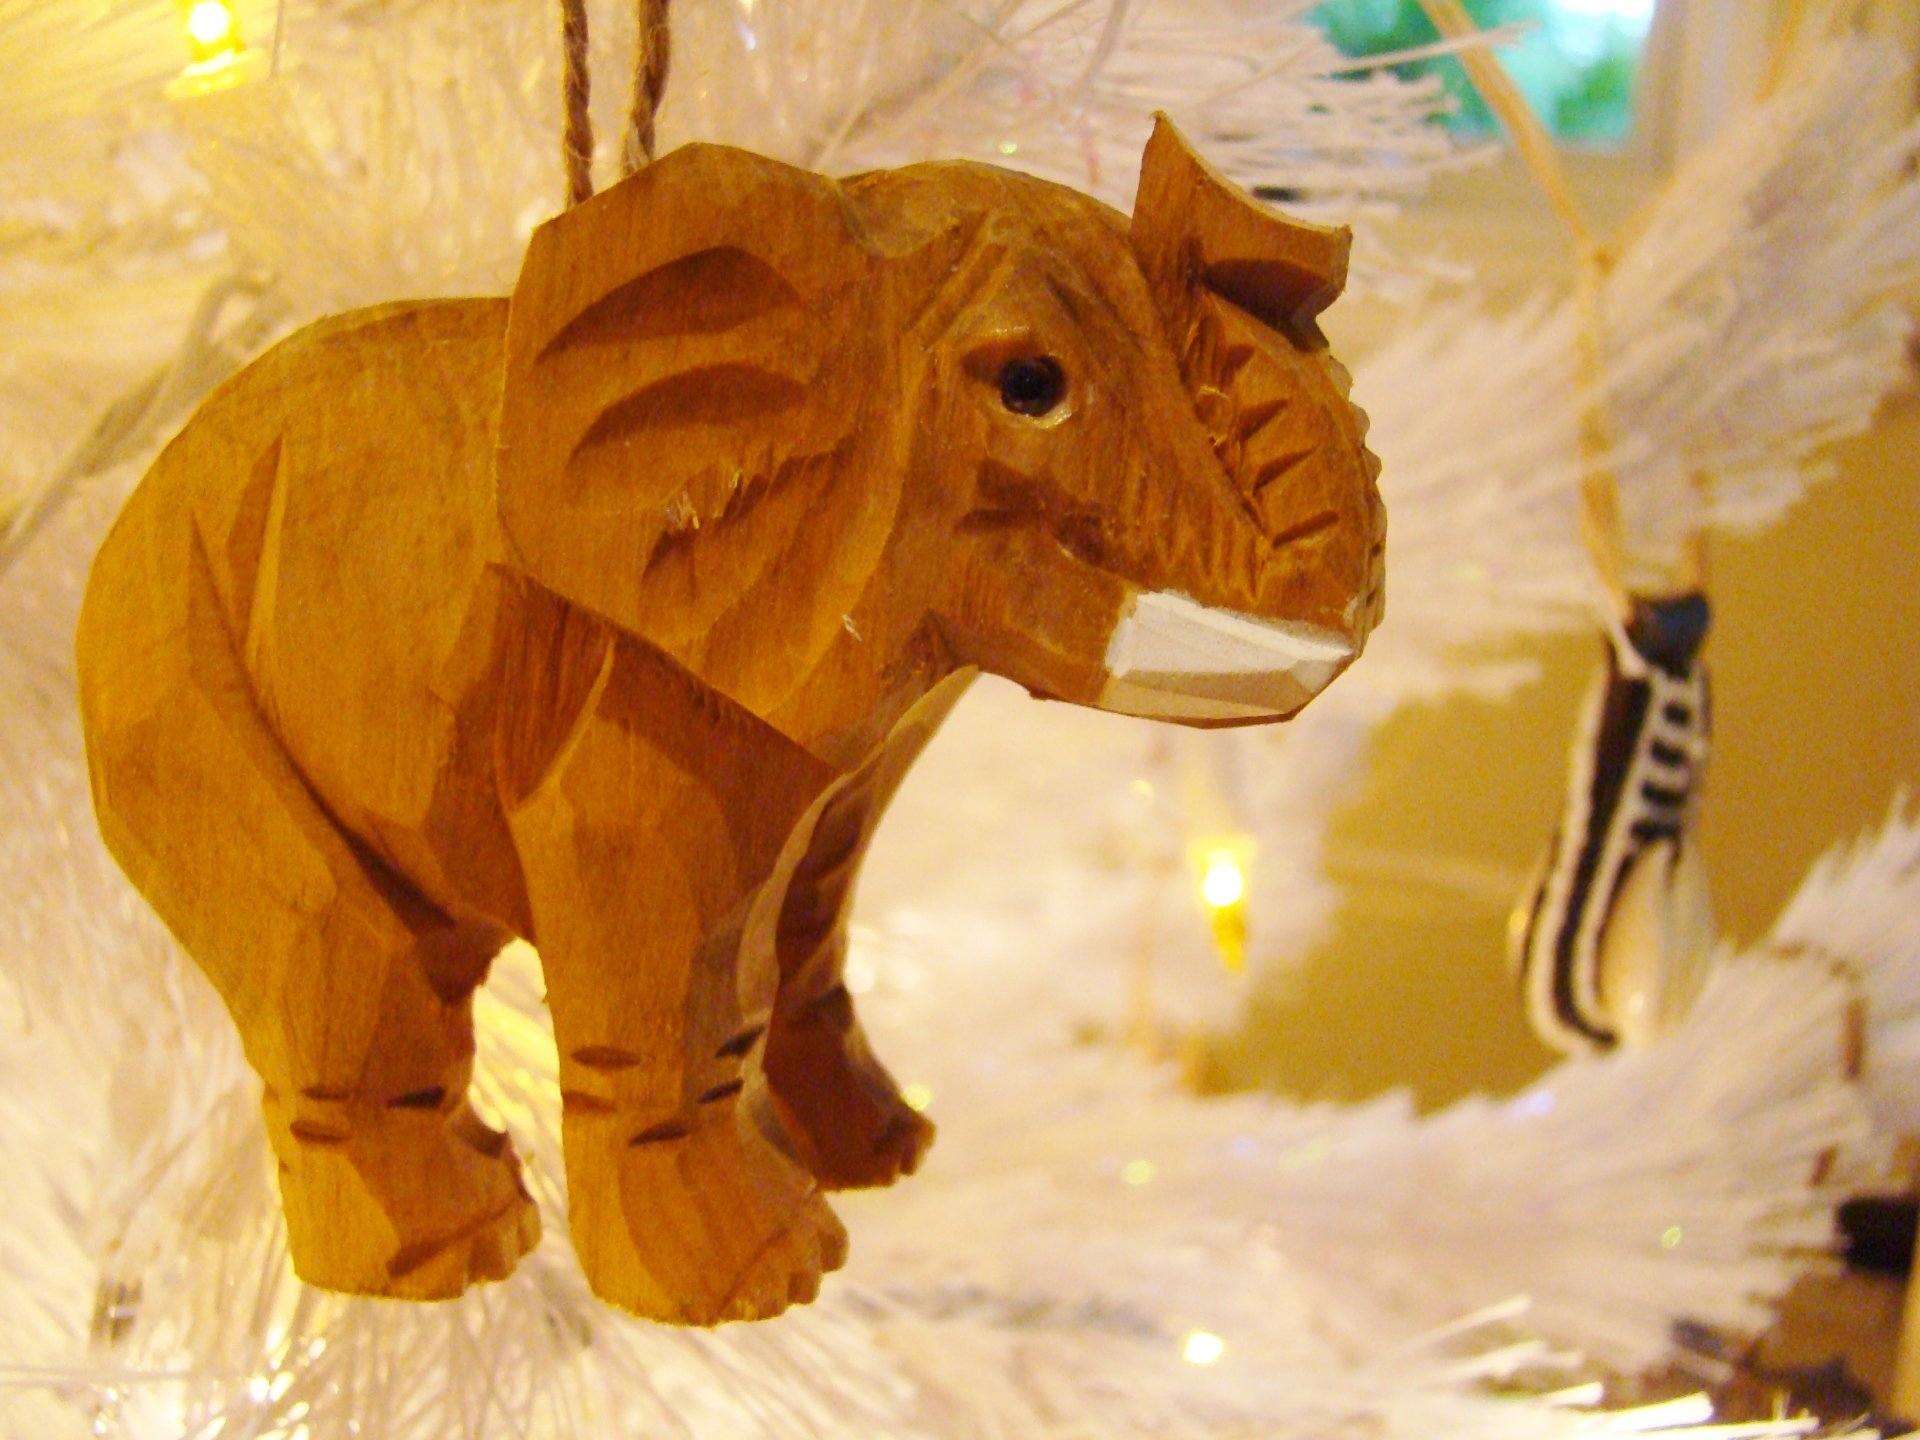 Fiorito Interior Design, interior design, Homes For The Holidays, African, holiday tree, carved wooden elephant ornament